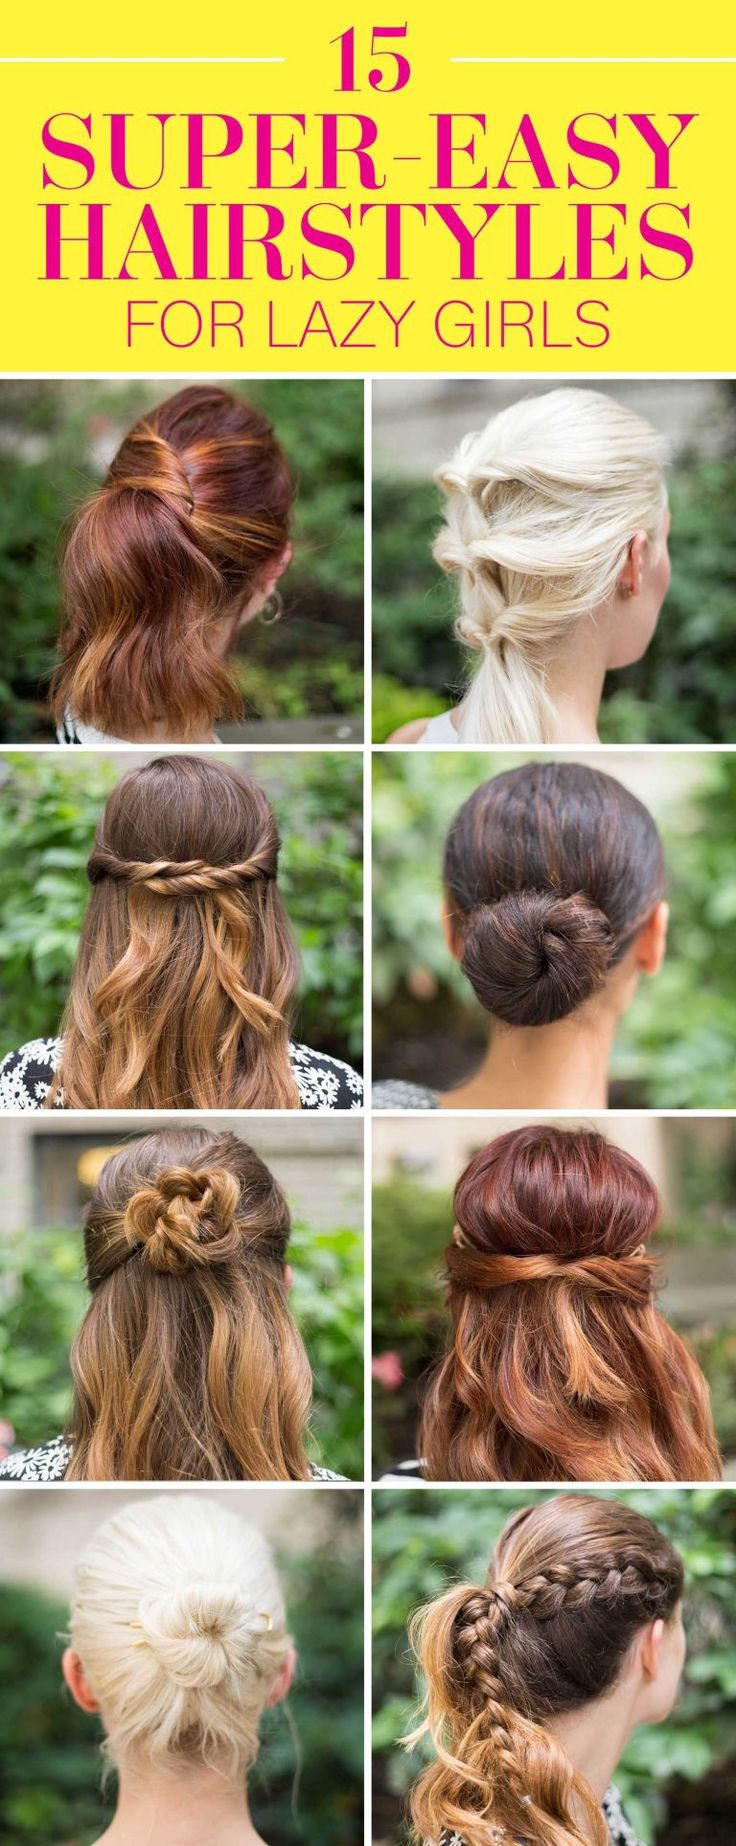 Just because you're lazy doesn't mean you want to look like you DGAF. Here are surprisingly simple yet super-chic hairstyles for the girl who just can't be bothered. These looks are so doable you can master them in two to three steps.